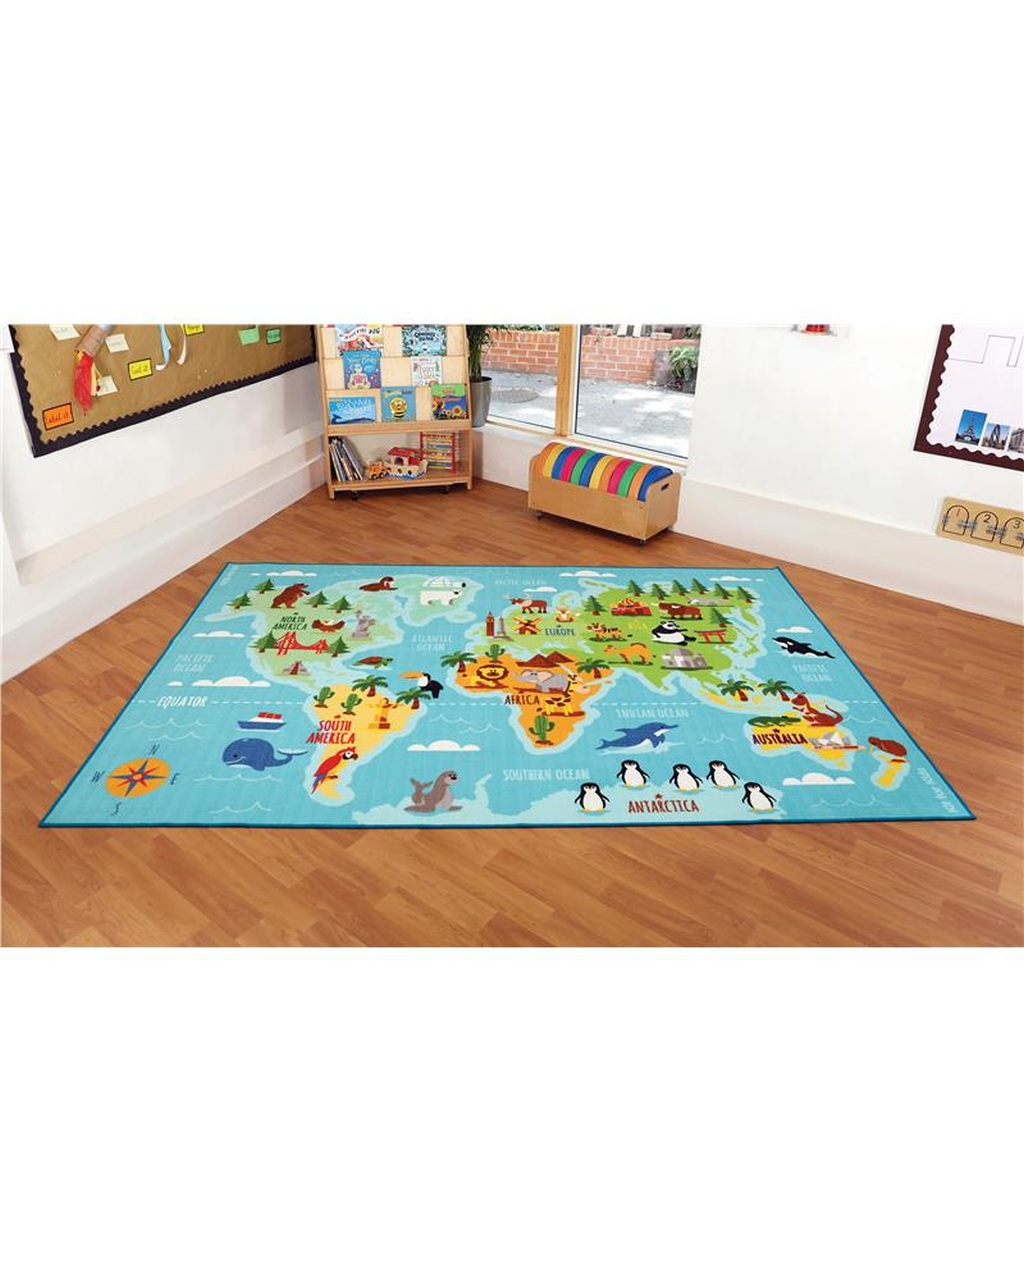 Animals & Places Of The World Carpet